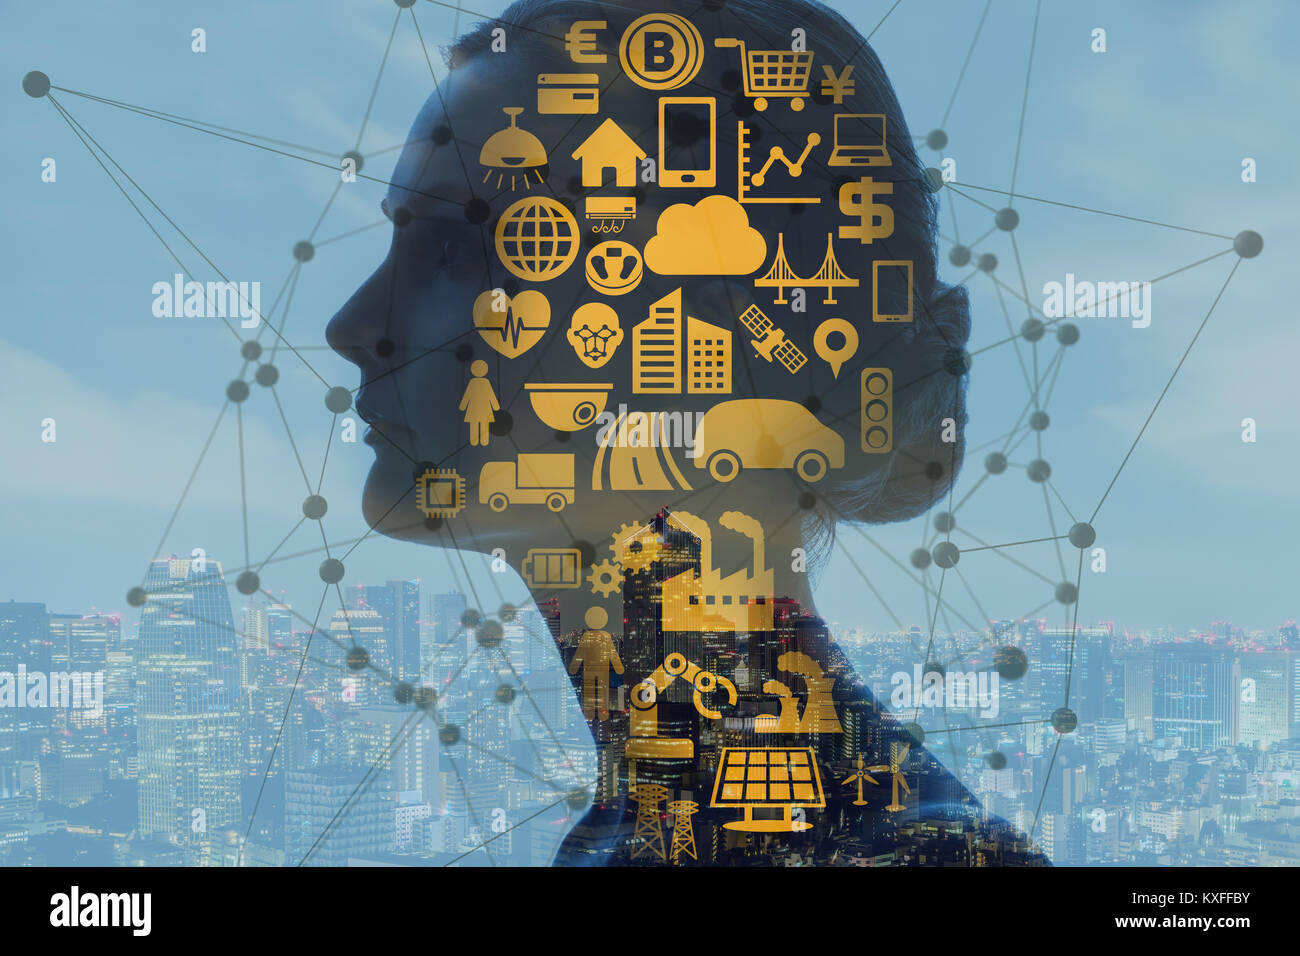 AI(Artificial Intelligence) concept. - Stock Image